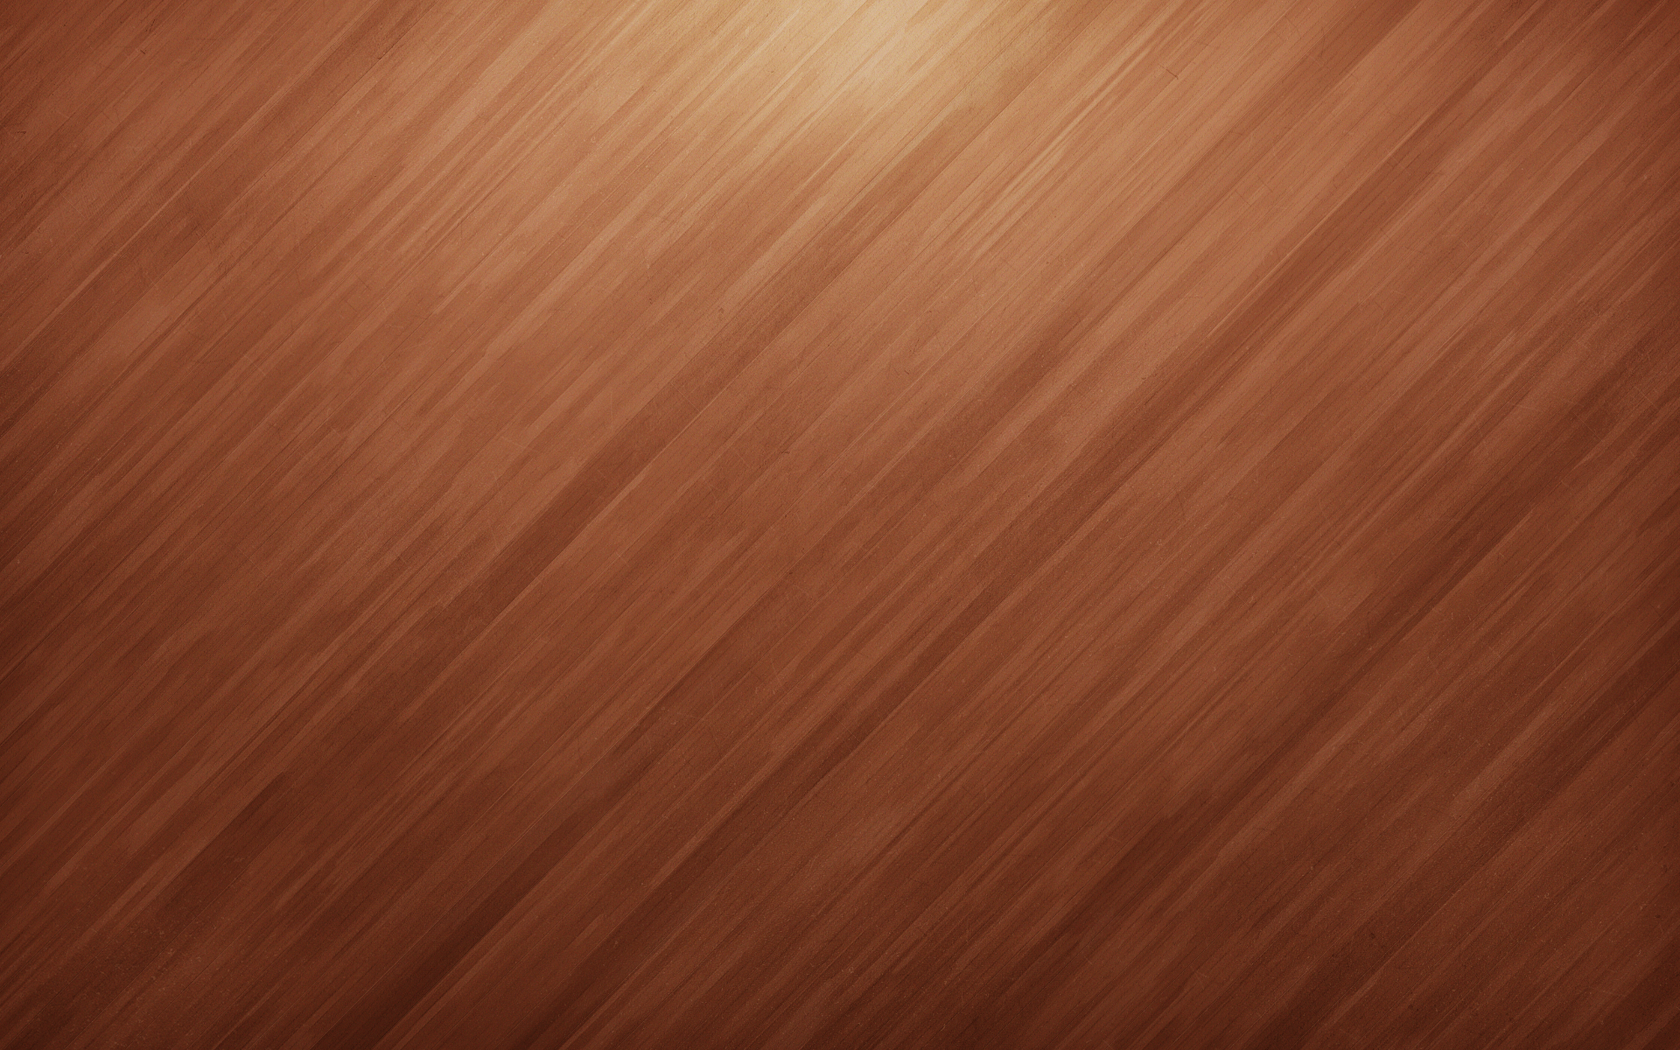 Wooden Desk Background ~ Tni awesome desk backgrounds wallpapers